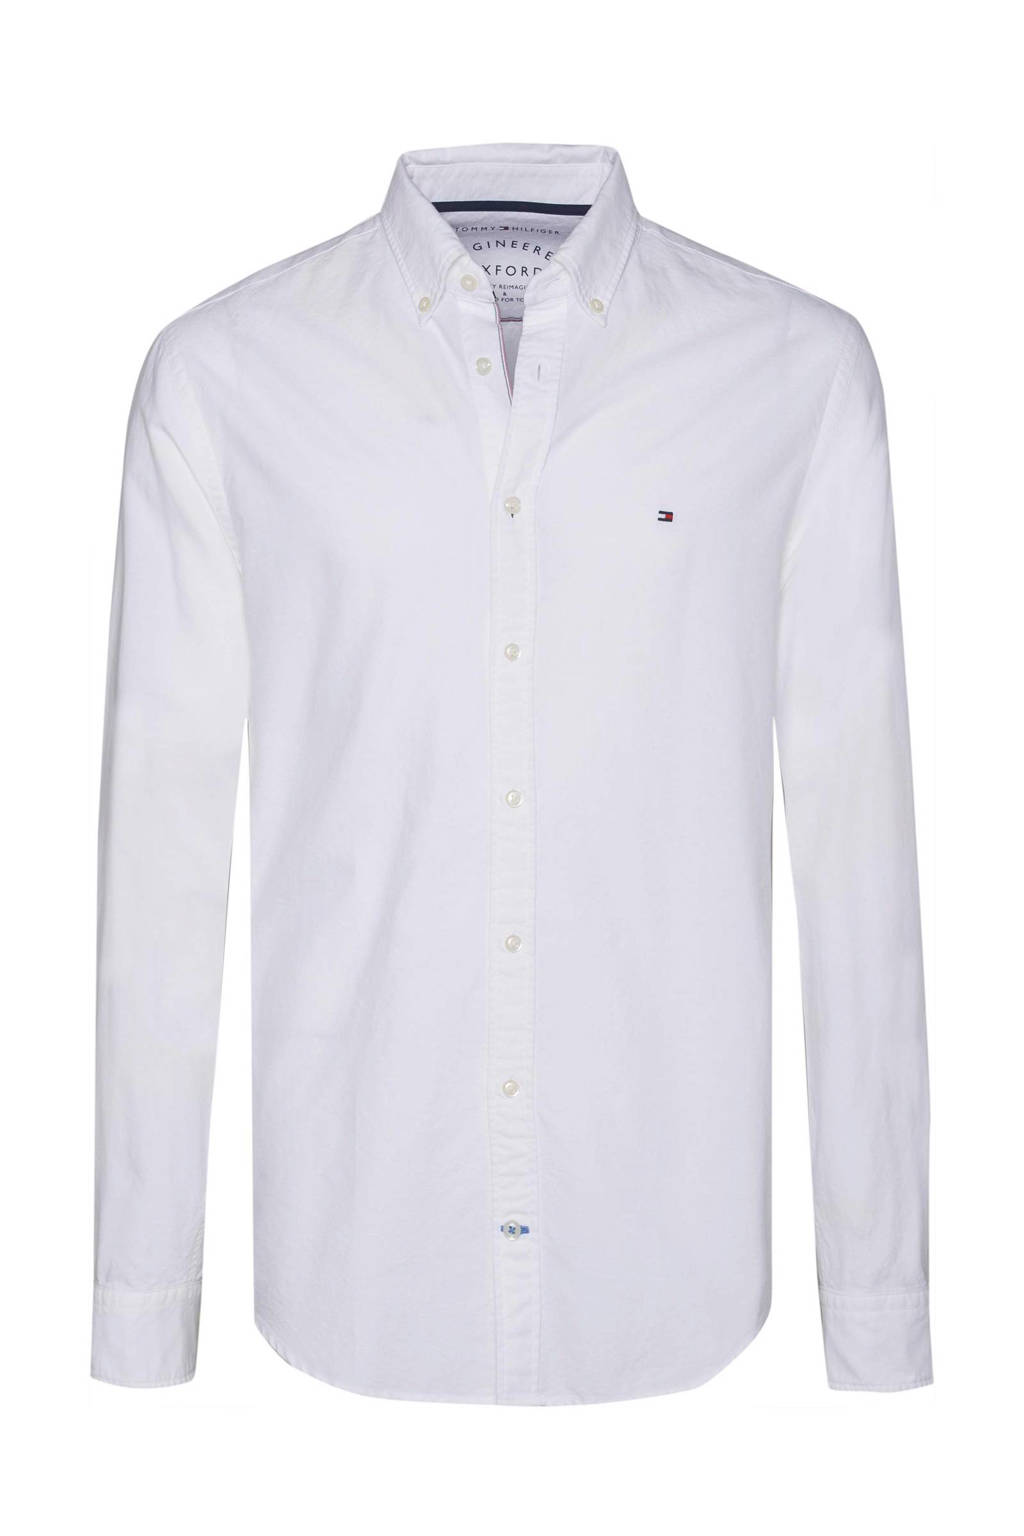 Wit Overhemd Heren.Tommy Hilfiger Oxford Regular Fit Overhemd Wehkamp